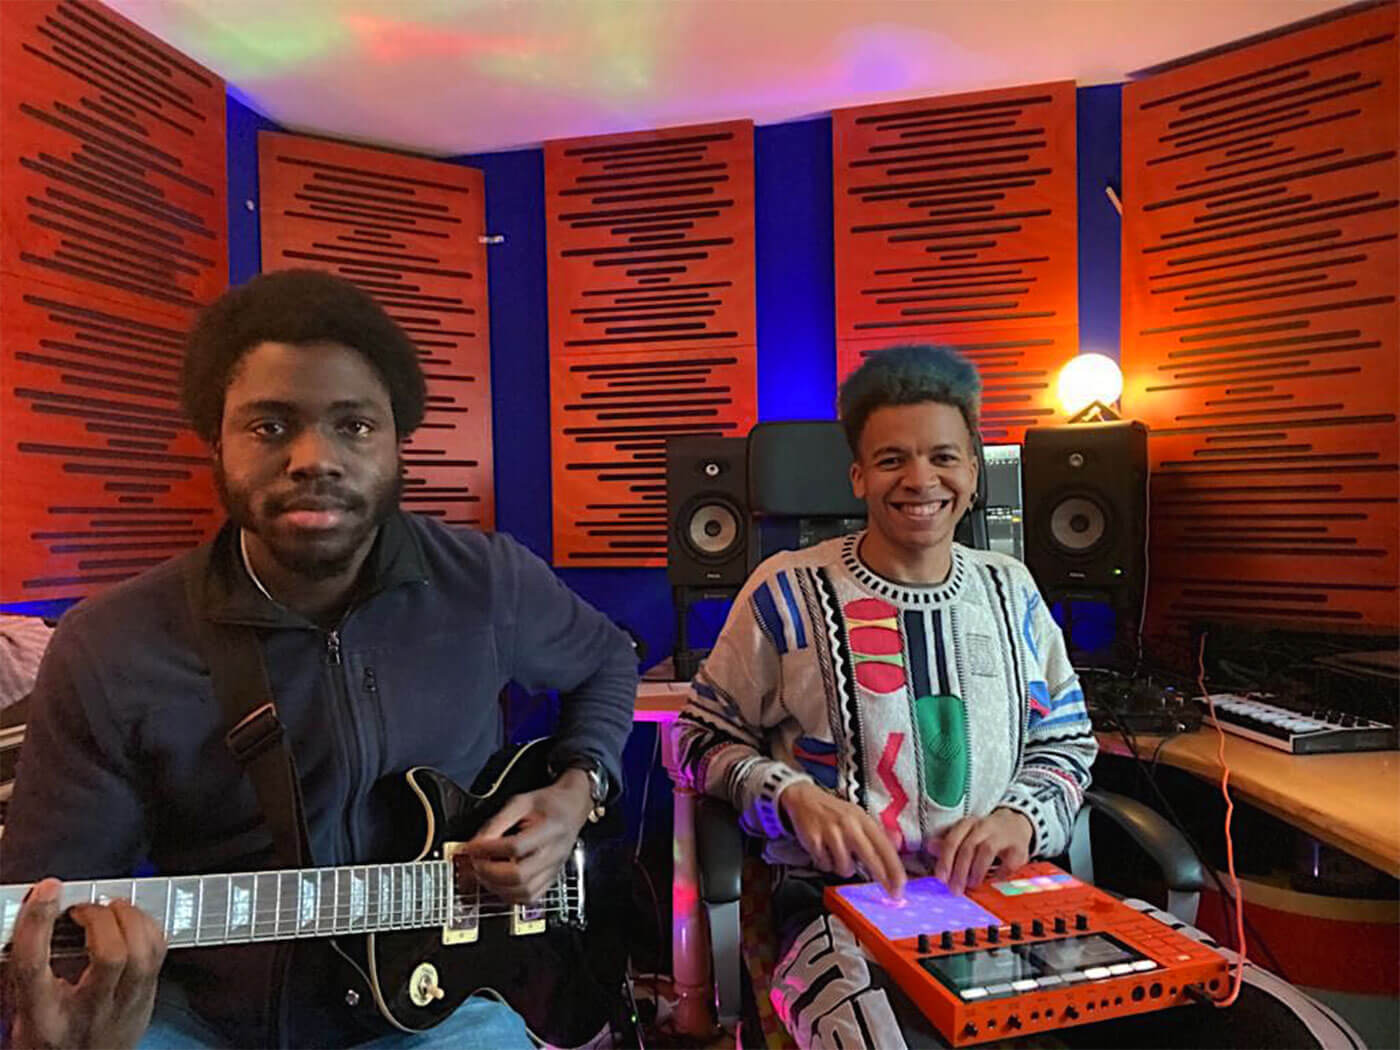 Show Off Your Studio: Blue Lab Beats craft smooth jazztronica in their shed | MusicTech